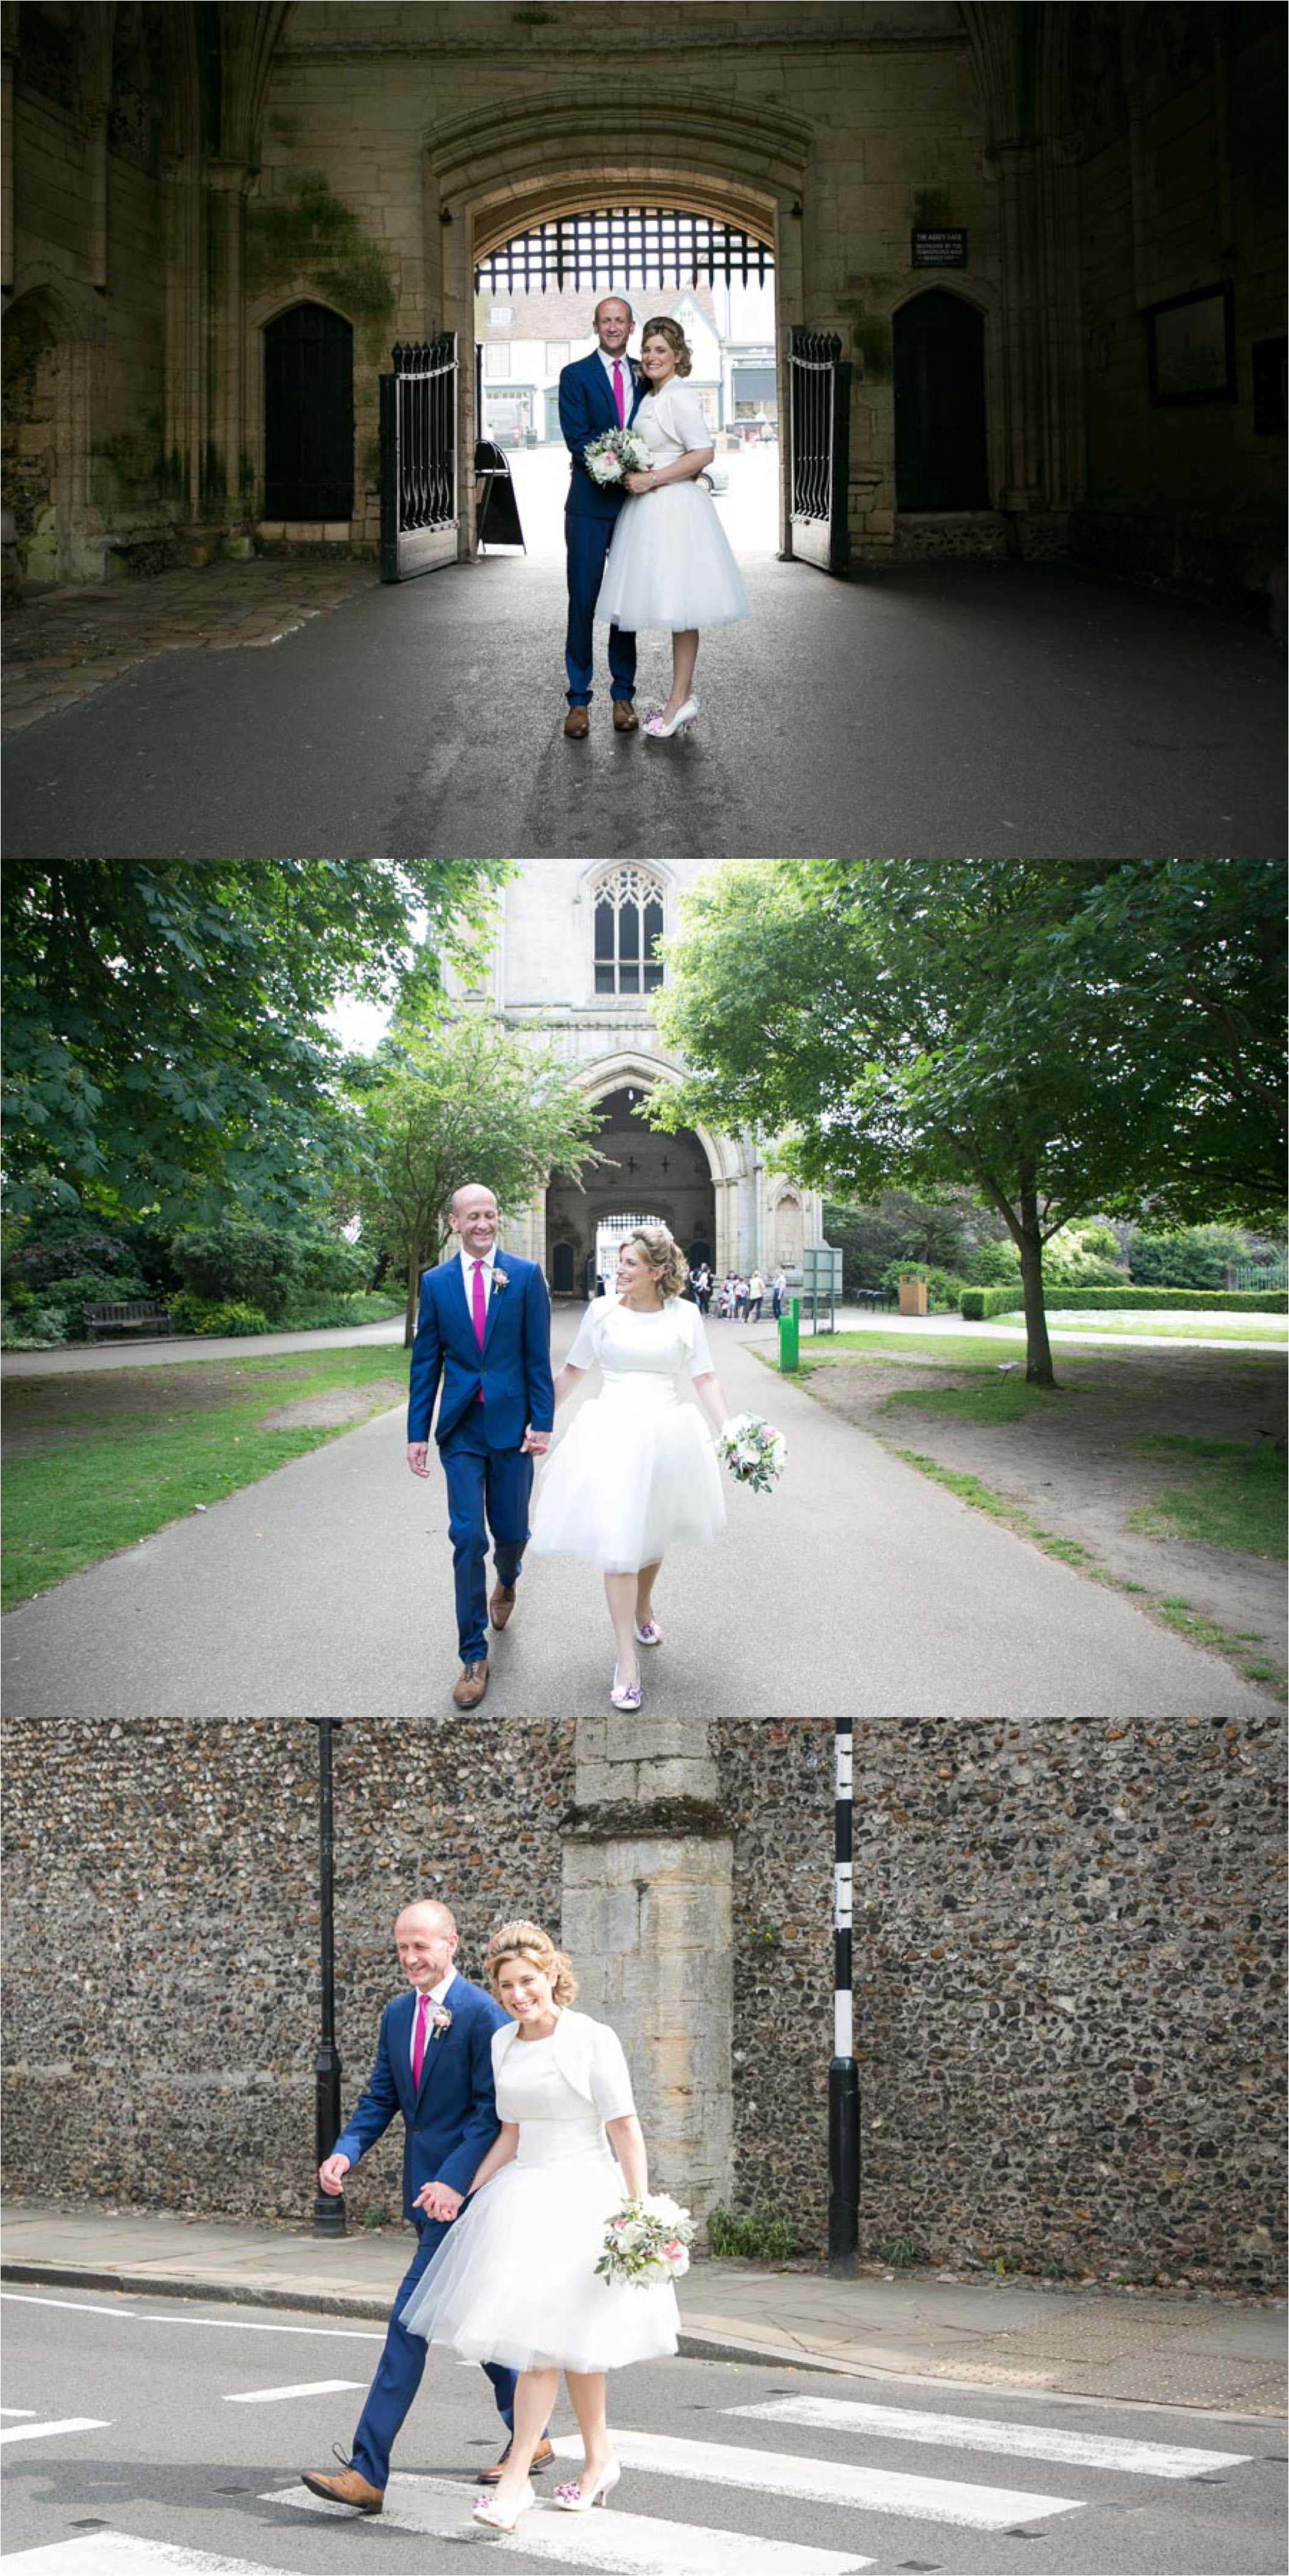 Natural fun wedding photography in Bury St Edmunds for small 50's wedding